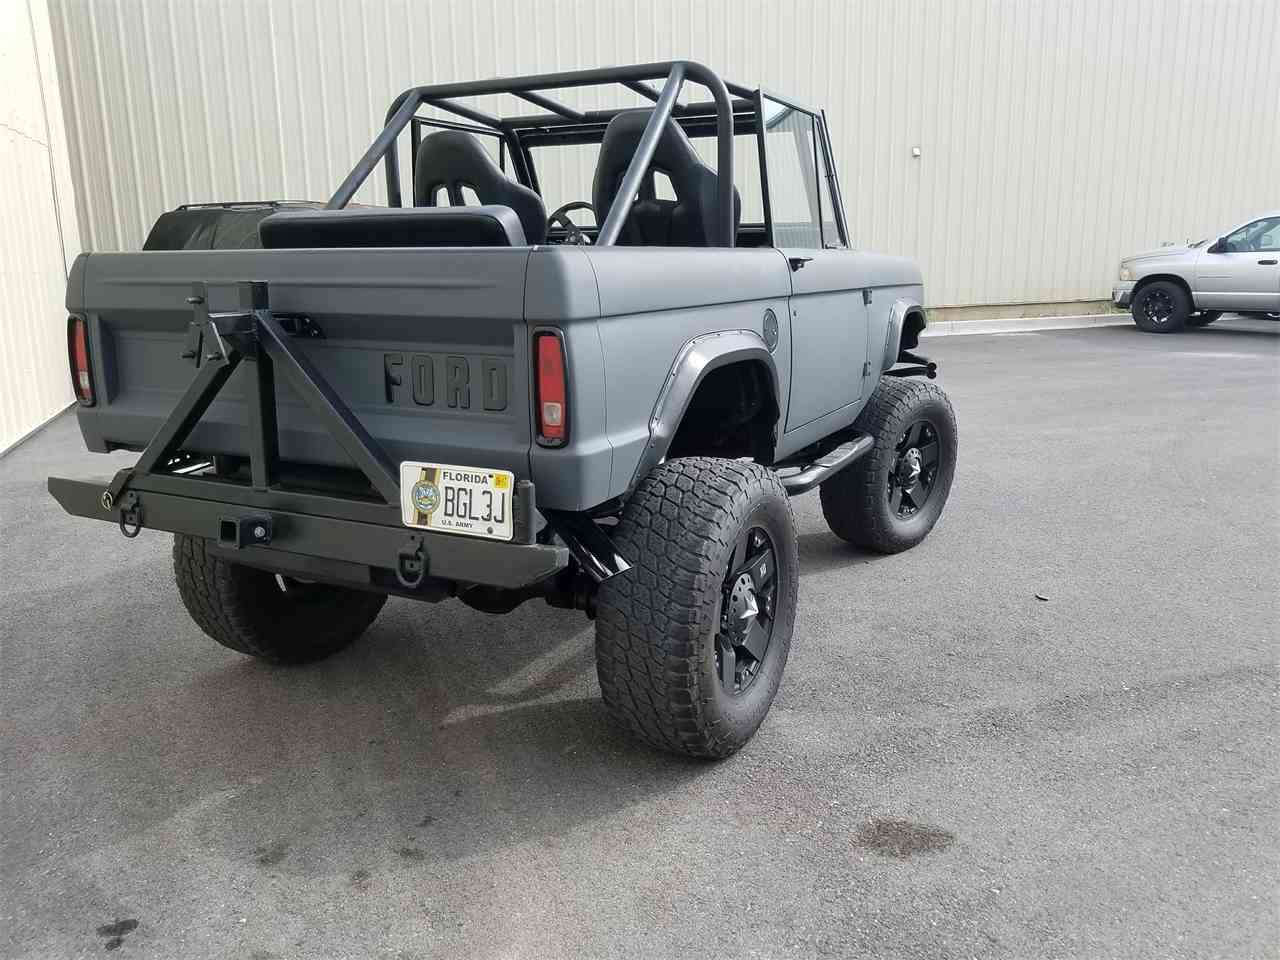 Large Picture of '69 Ford Bronco located in Salt Lake City Utah - $32,500.00 - LBI7